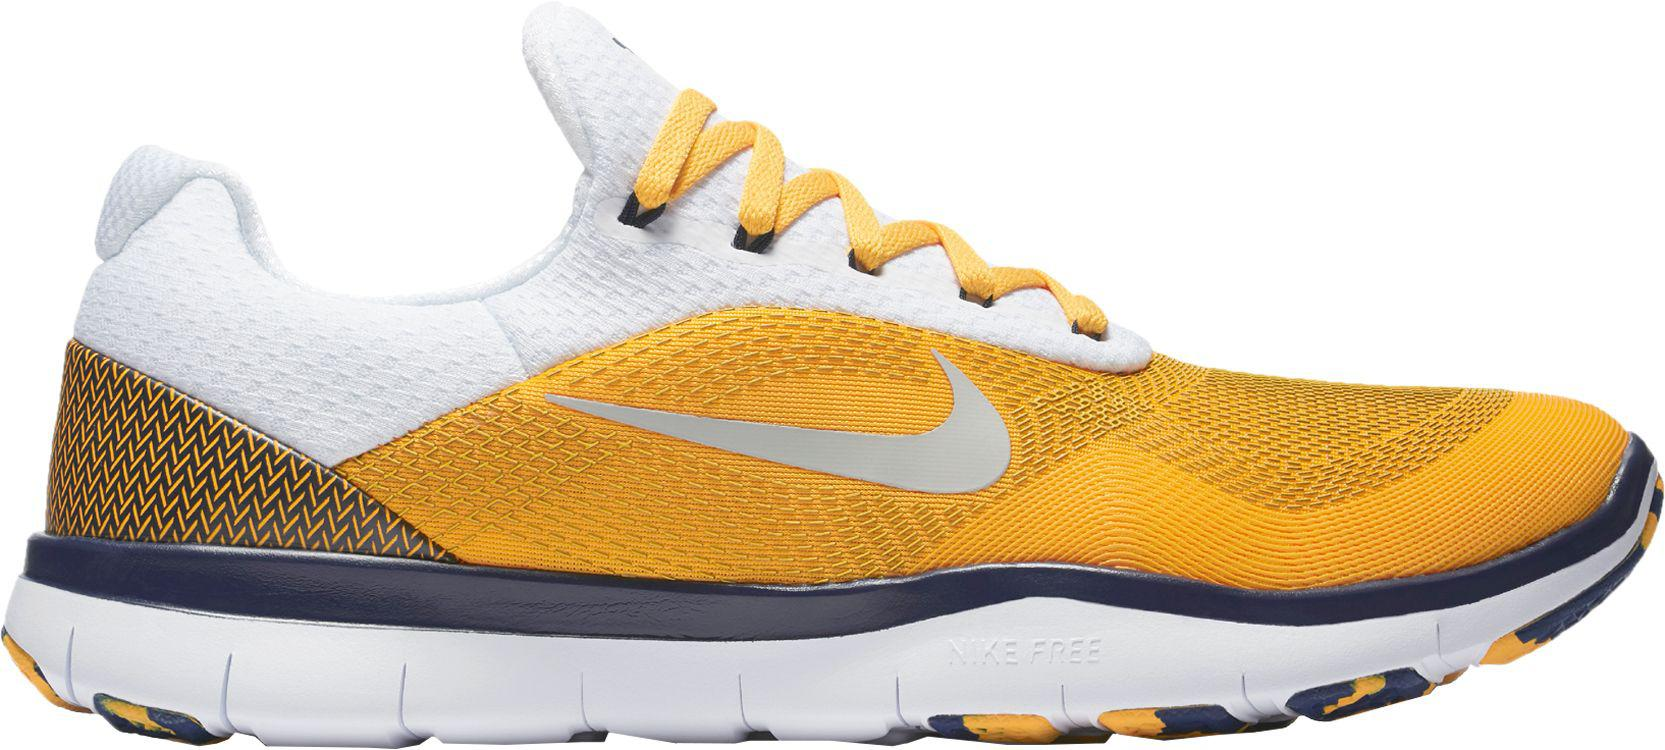 18a5401d77eb Lyst - Nike Free Trainer V7 Week Zero Wvu Edition Training Shoes in ...